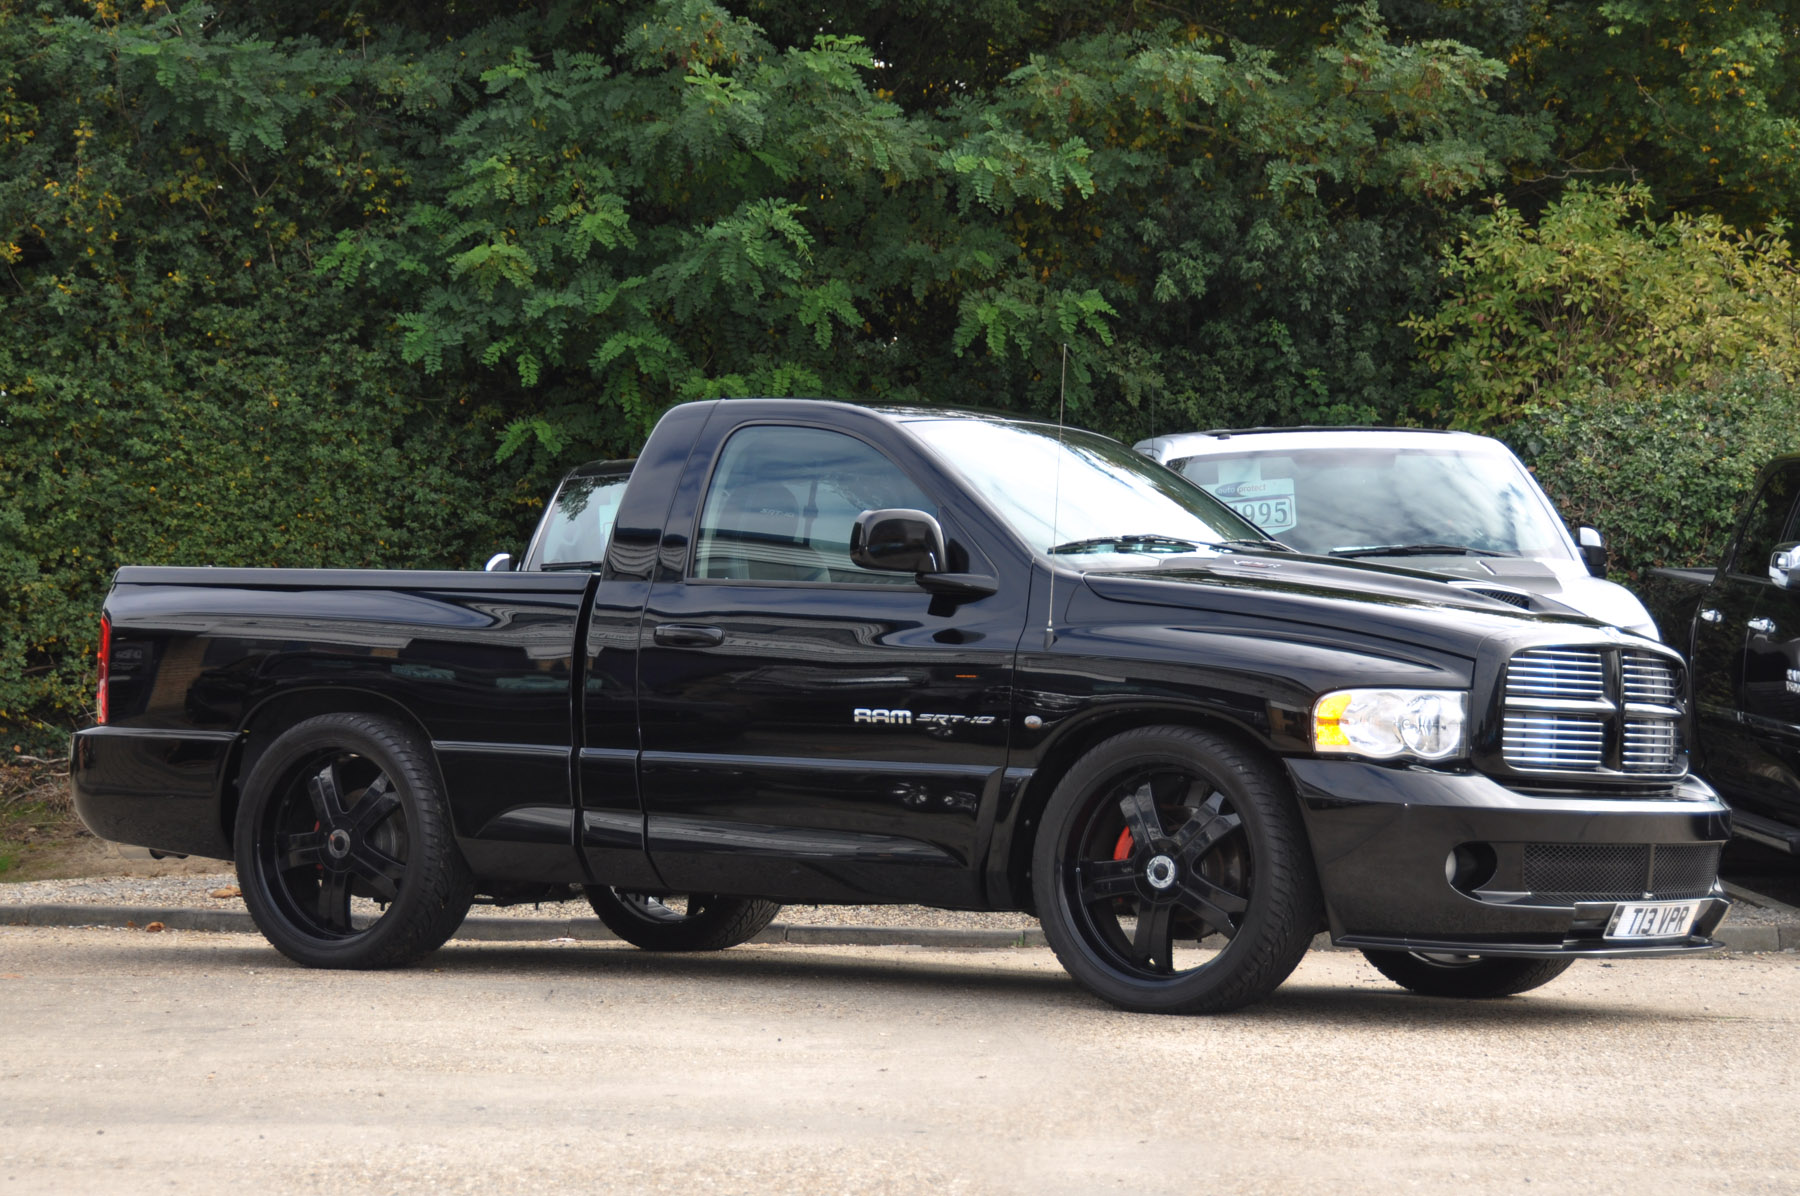 Ram Srt 10 >> 2004 Dodge Ram SRT10 - Regular Cab - Viper Engined pickup